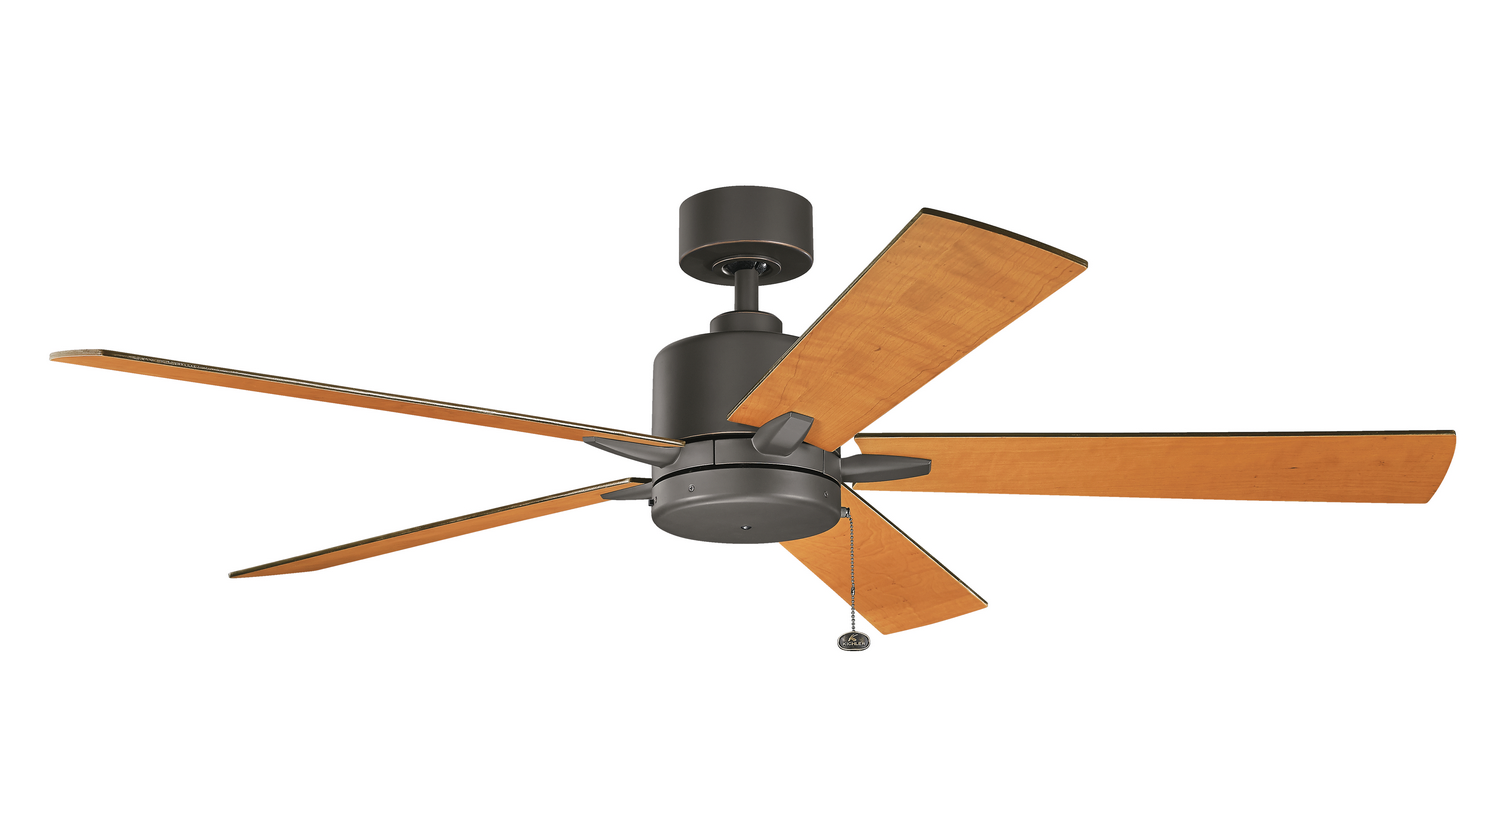 60 inchCeiling Fan from the Bowen collection by Kichler 330243OZ